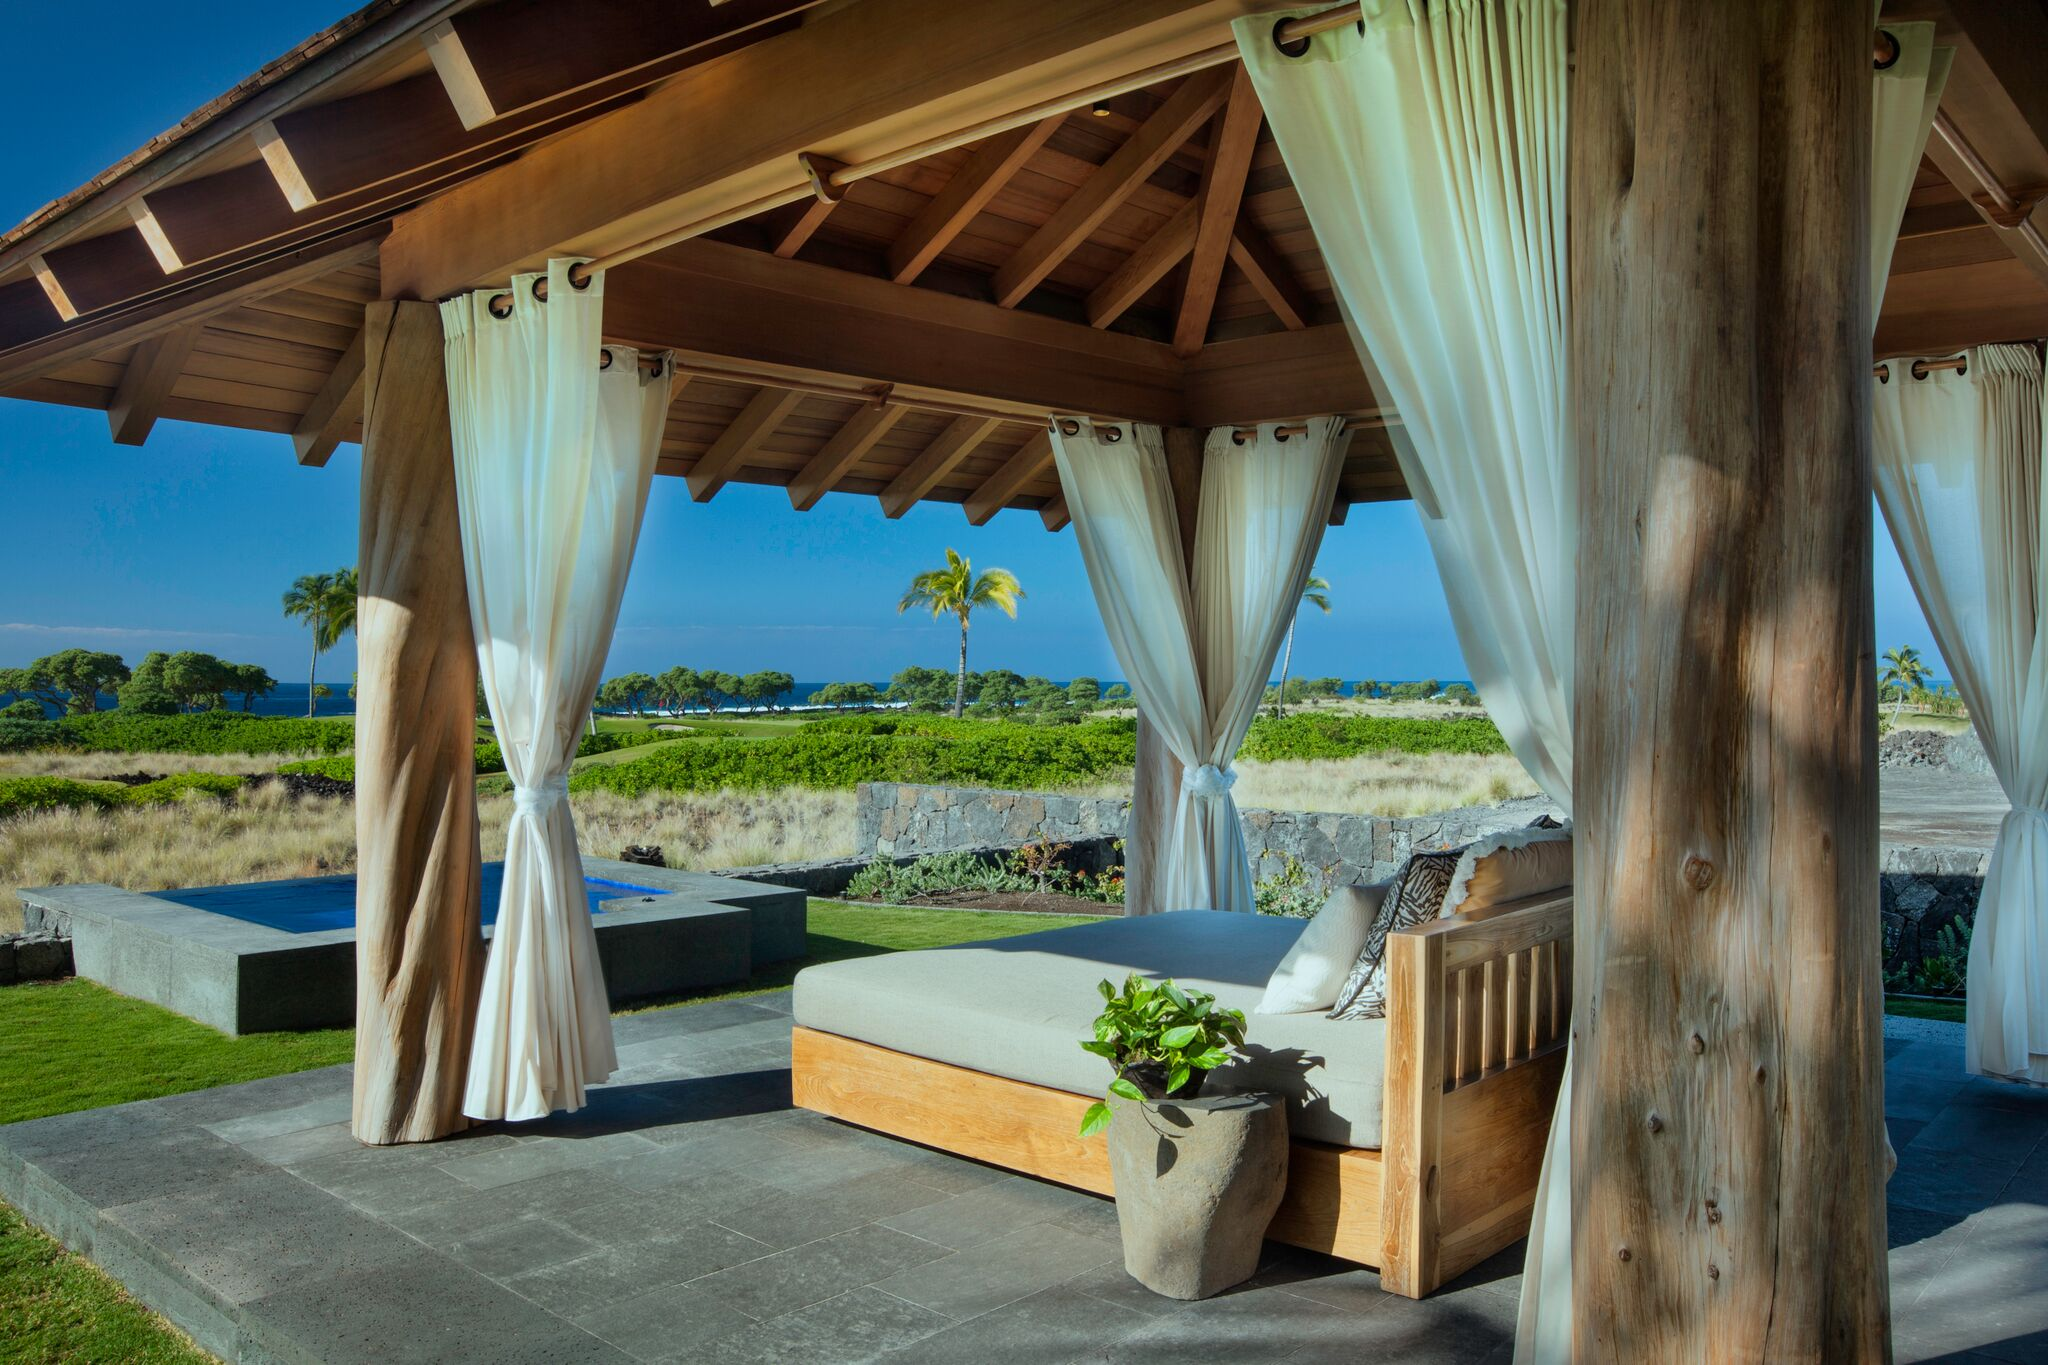 day-bed-spa-morning-light_16148709930_o_preview